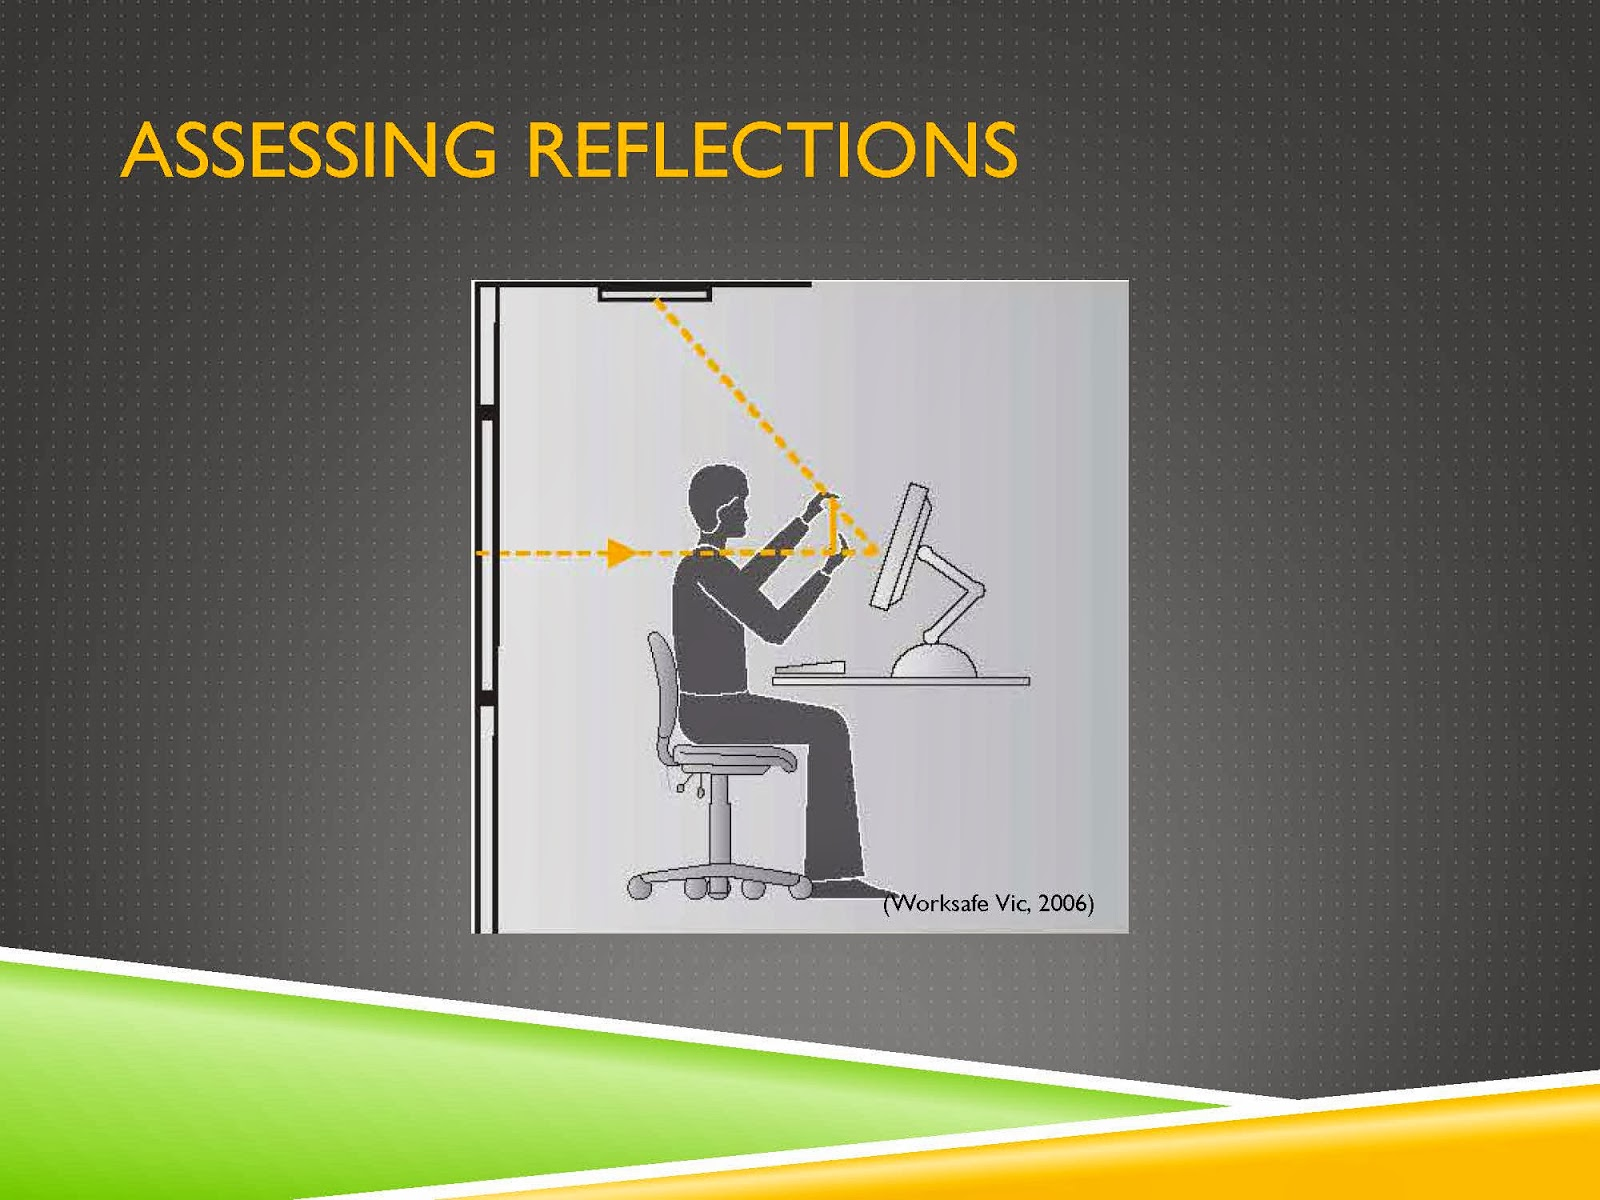 ANALYZE REFLECTIONS